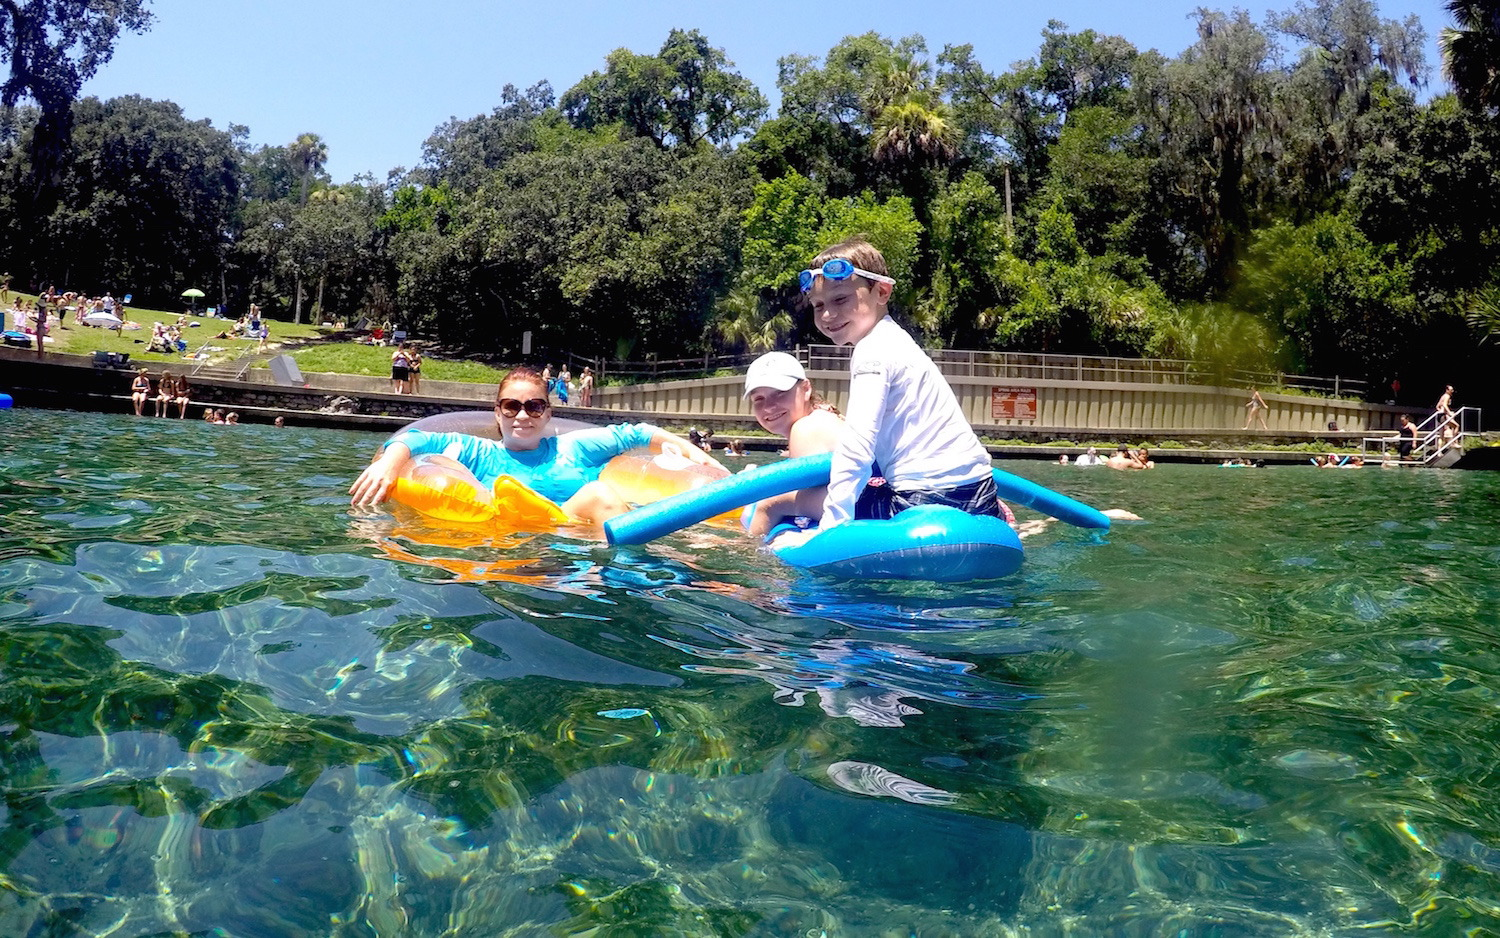 5 Things To Do At Wekiva Springs State Park